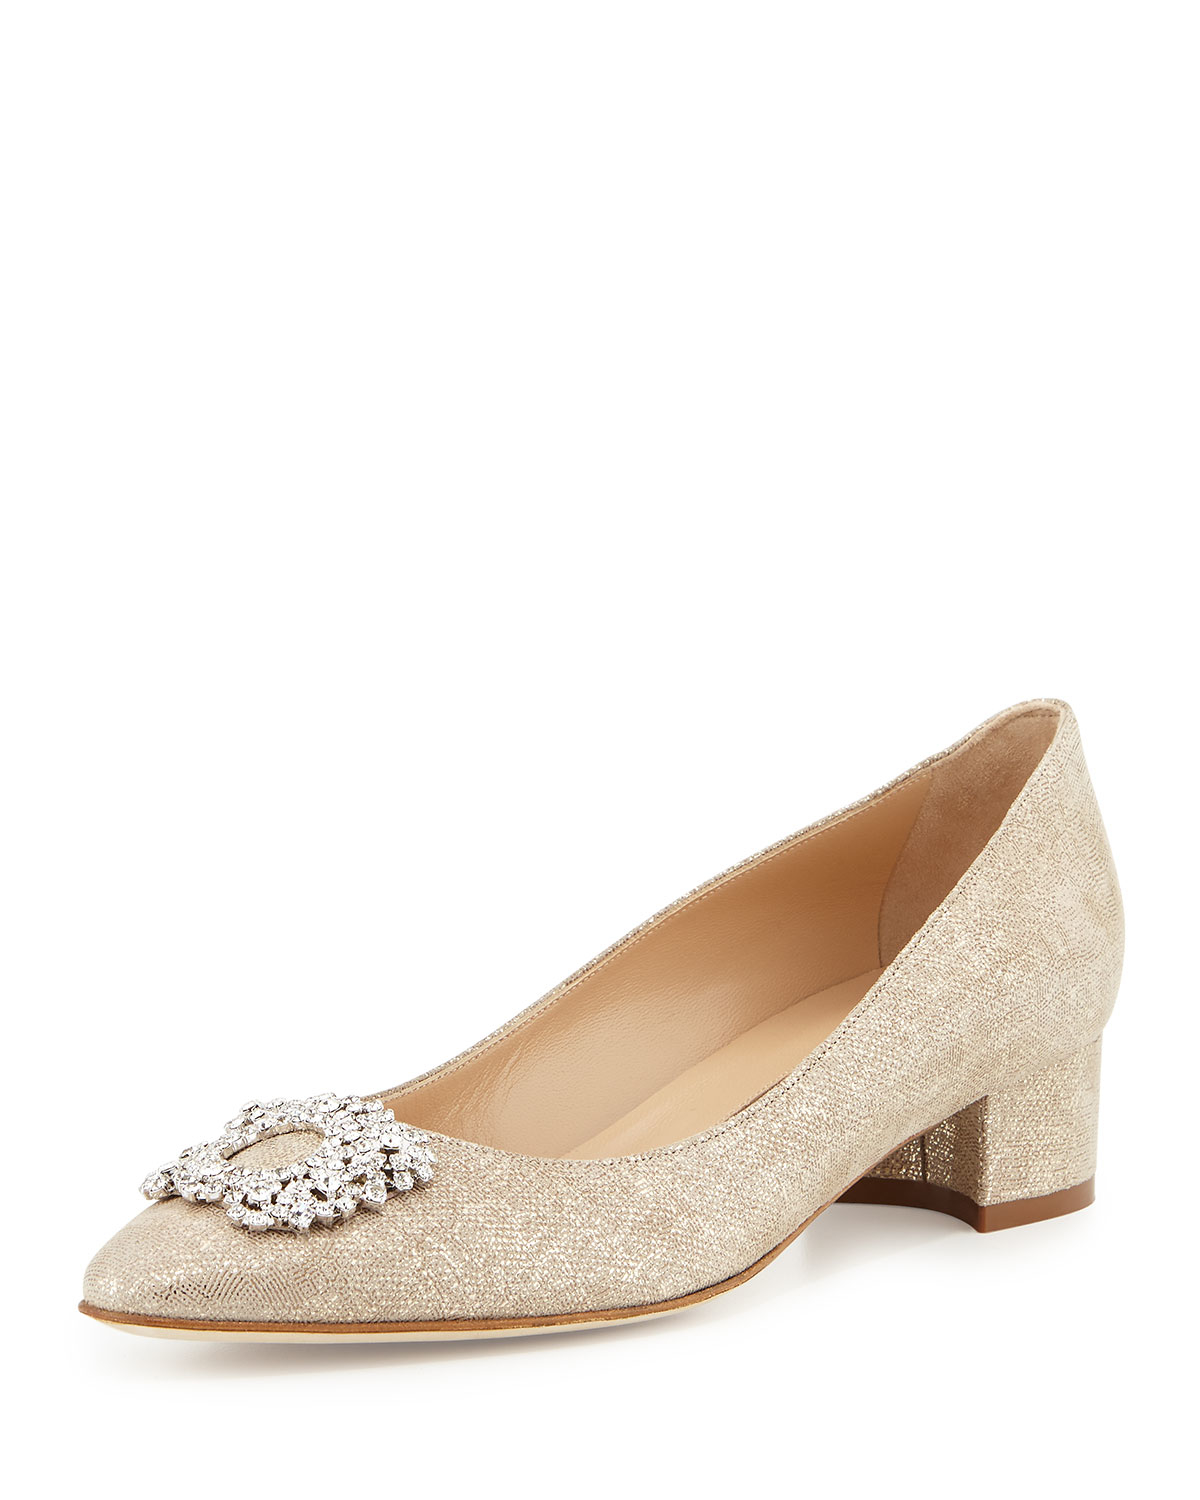 Lyst manolo blahnik listony crystal suede pumps in natural for Who is manolo blahnik